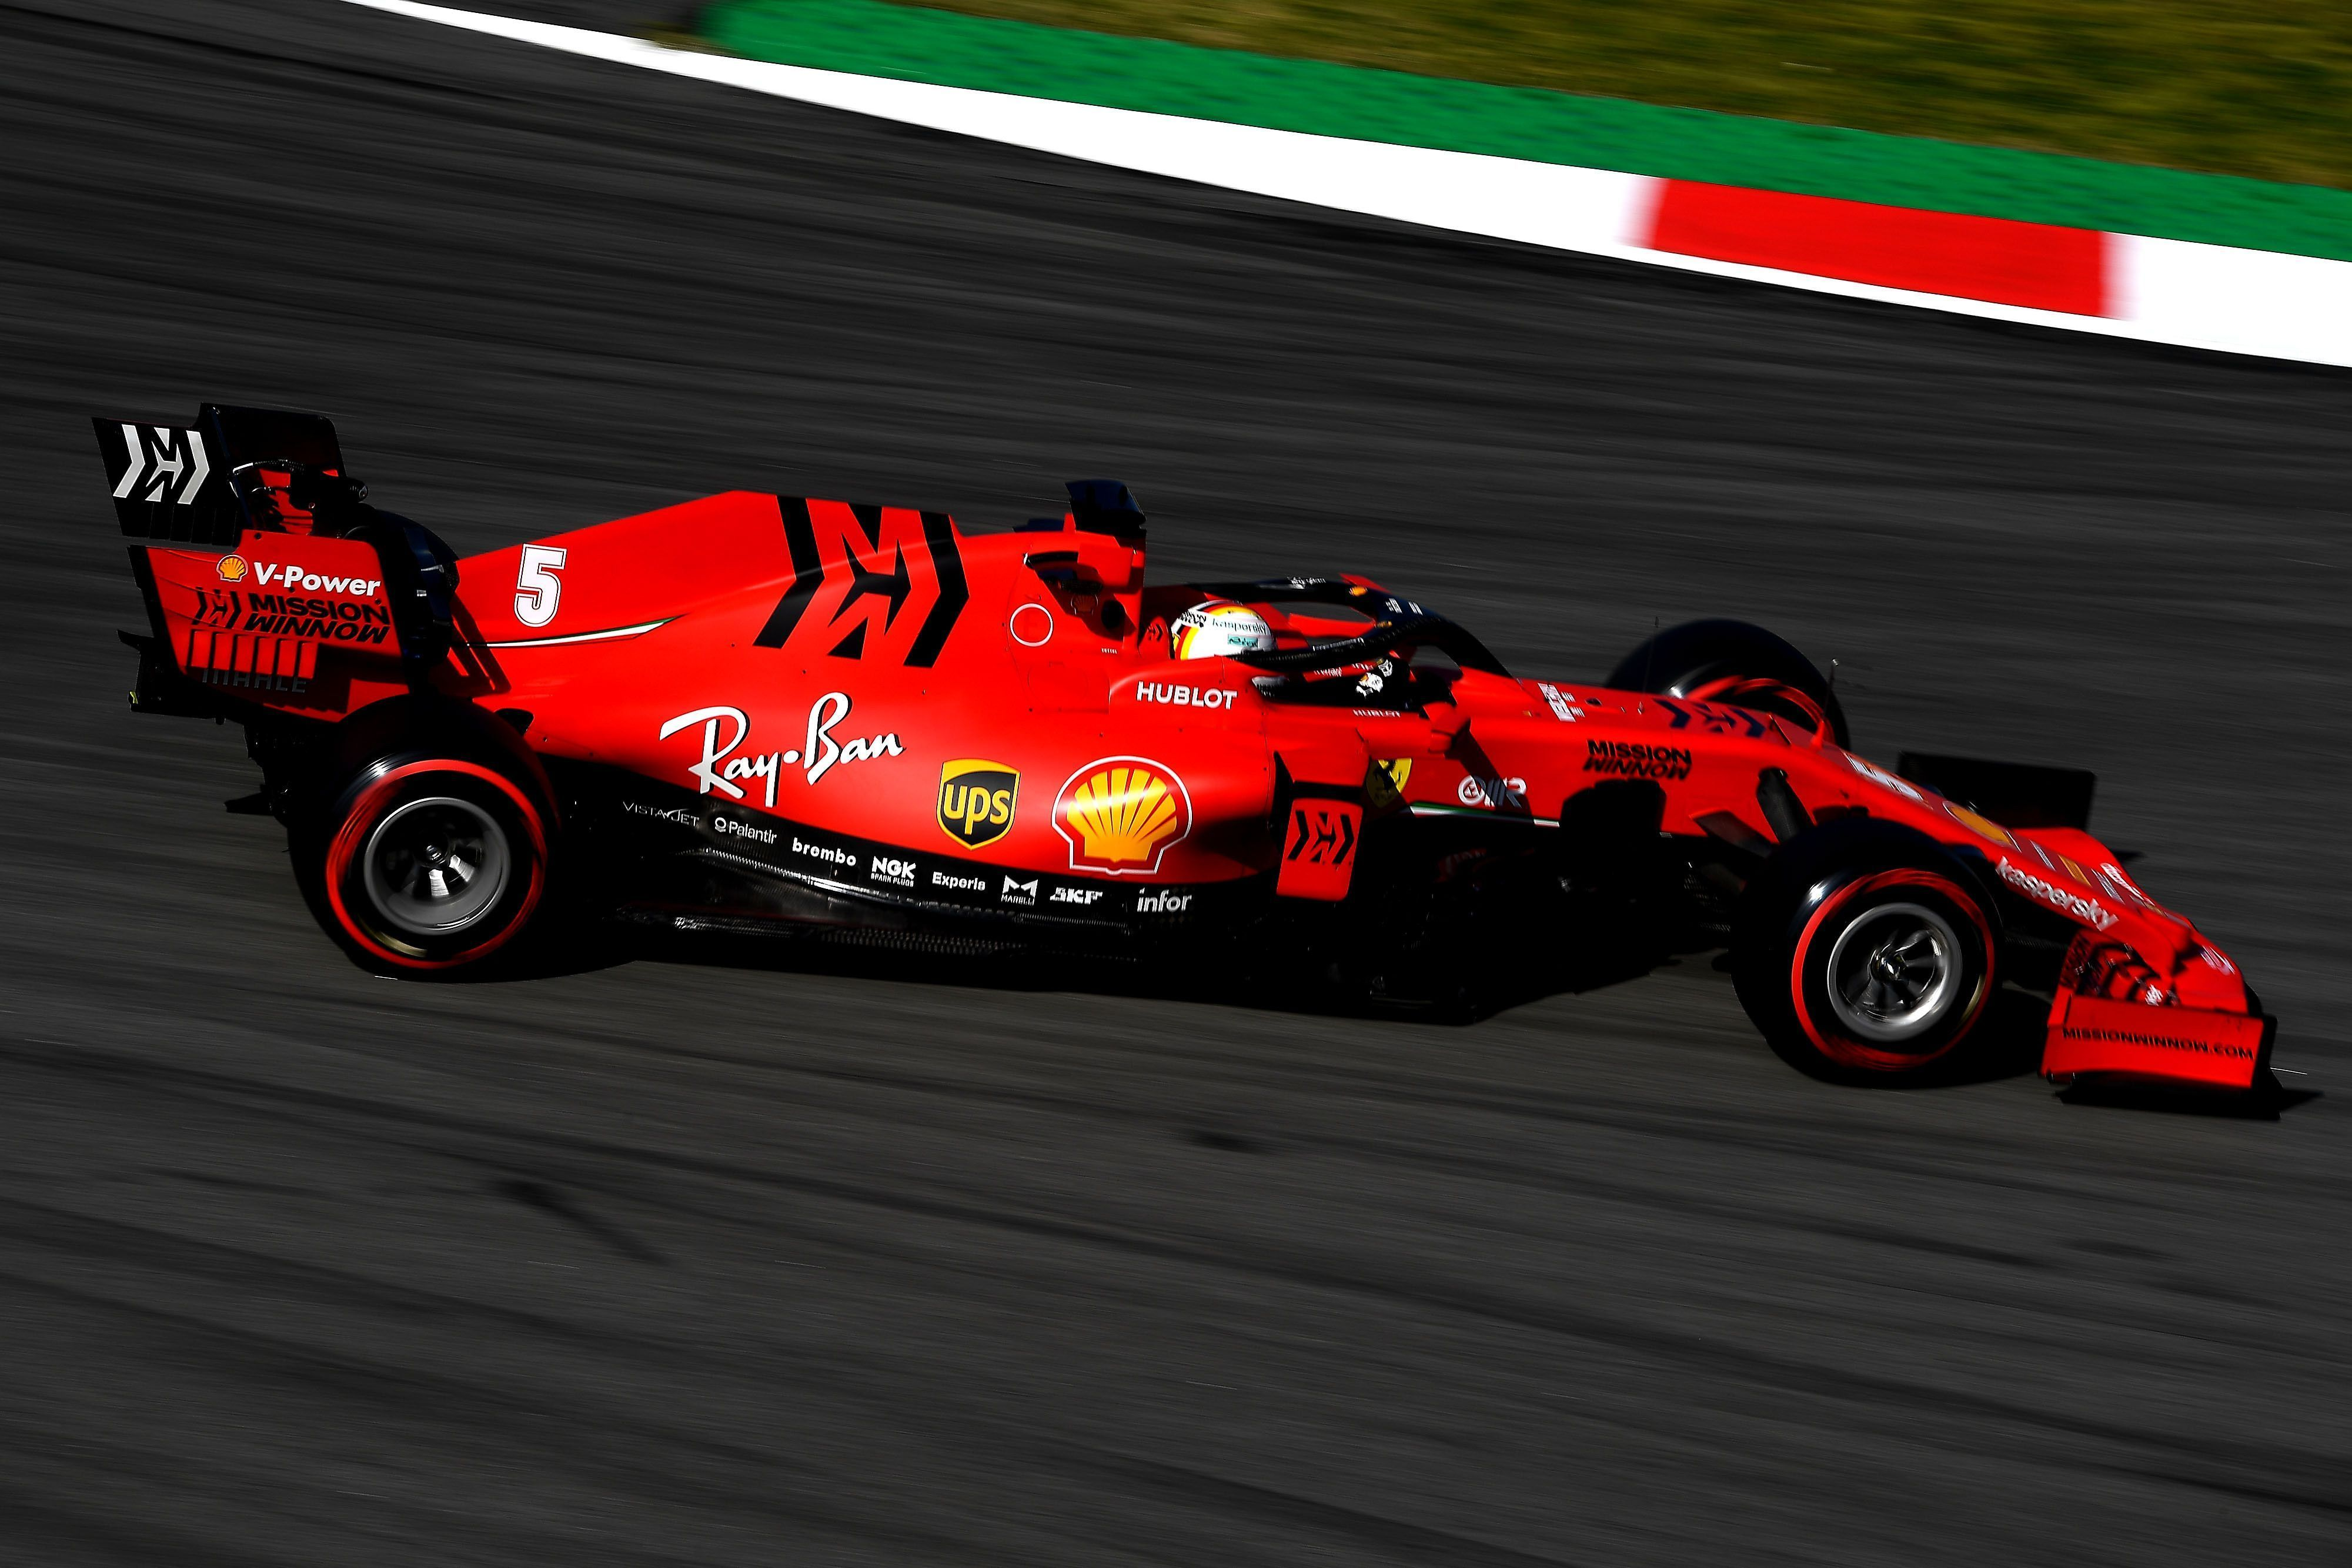 Fia To Work On Improvements In Pu Monitoring As Ferrari Analysis Ends